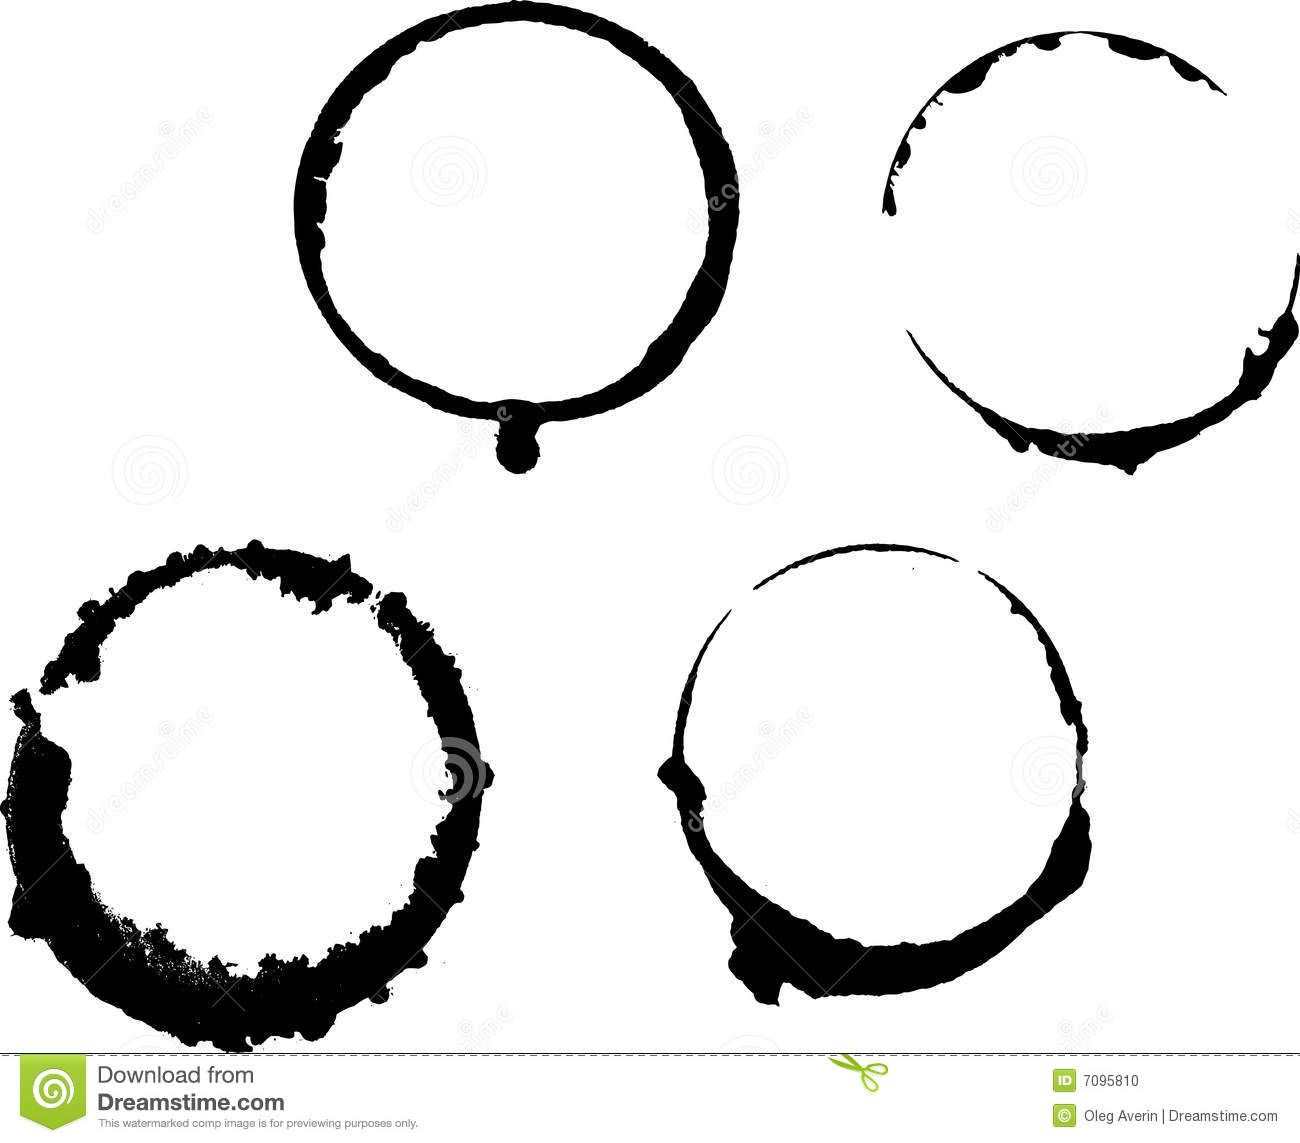 vector free stock Stains download from over. Vector coffee circle